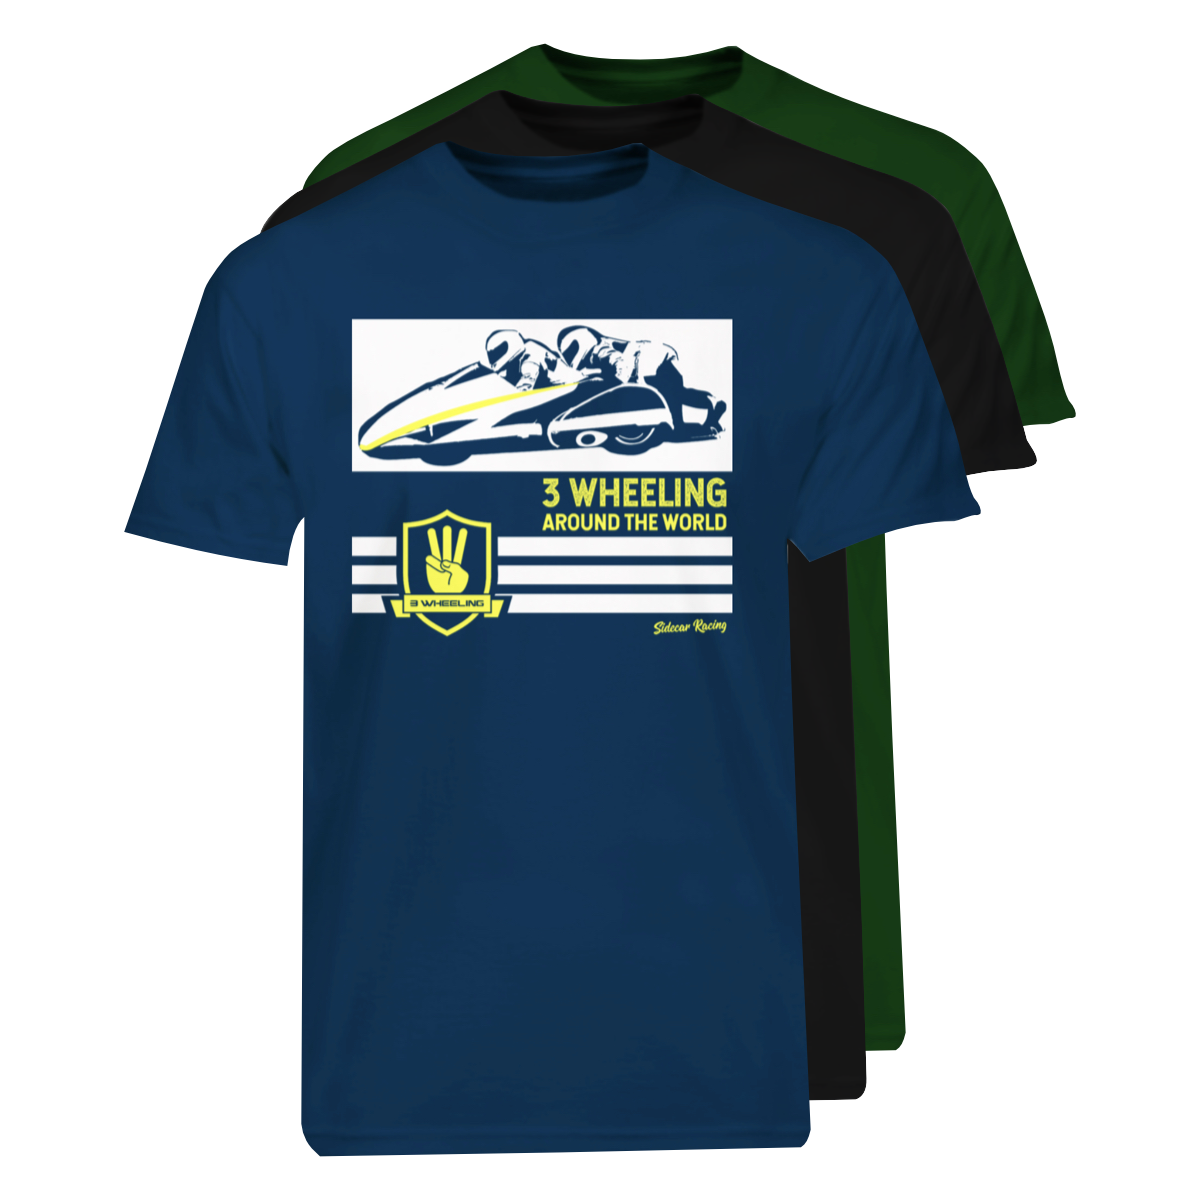 3W T-Shirt Around The World, Navy, Black, Green Stack #4.png